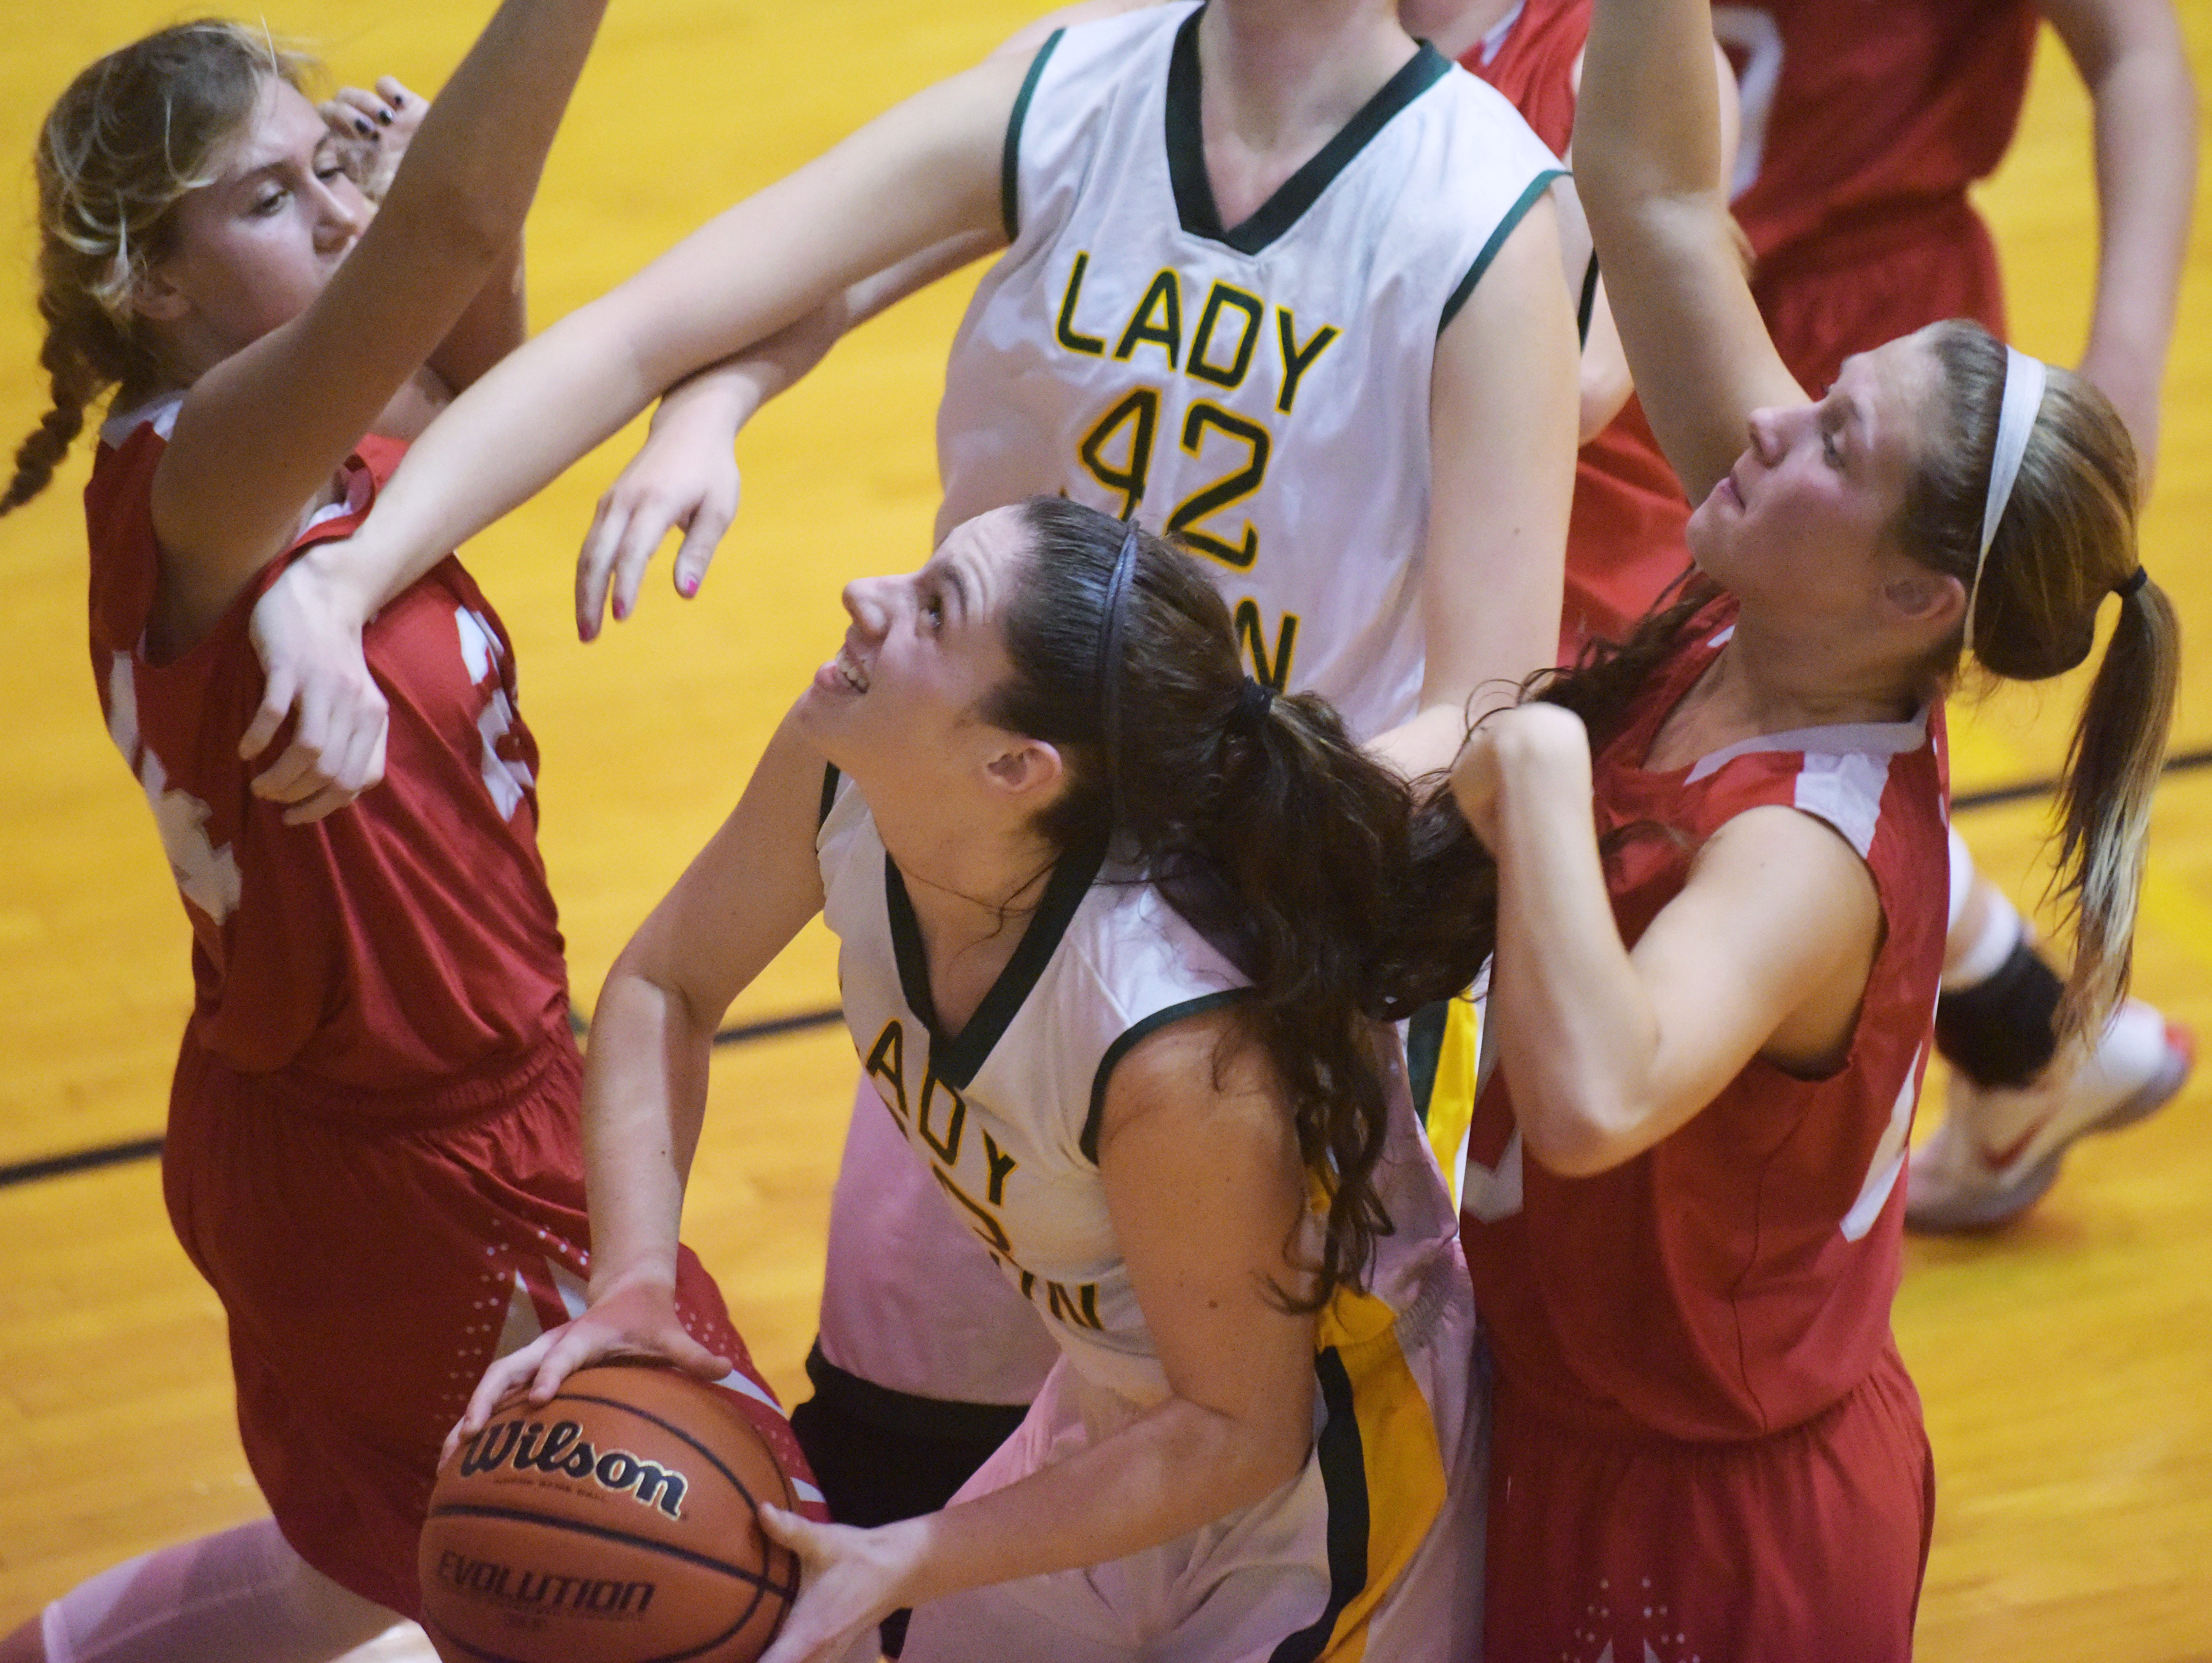 Benton Central's Betsy Marquie tries to score past two defenders Thursday, December 10, 2015 at Benton Central High School. Benton Central was victorious over West Lafayette.